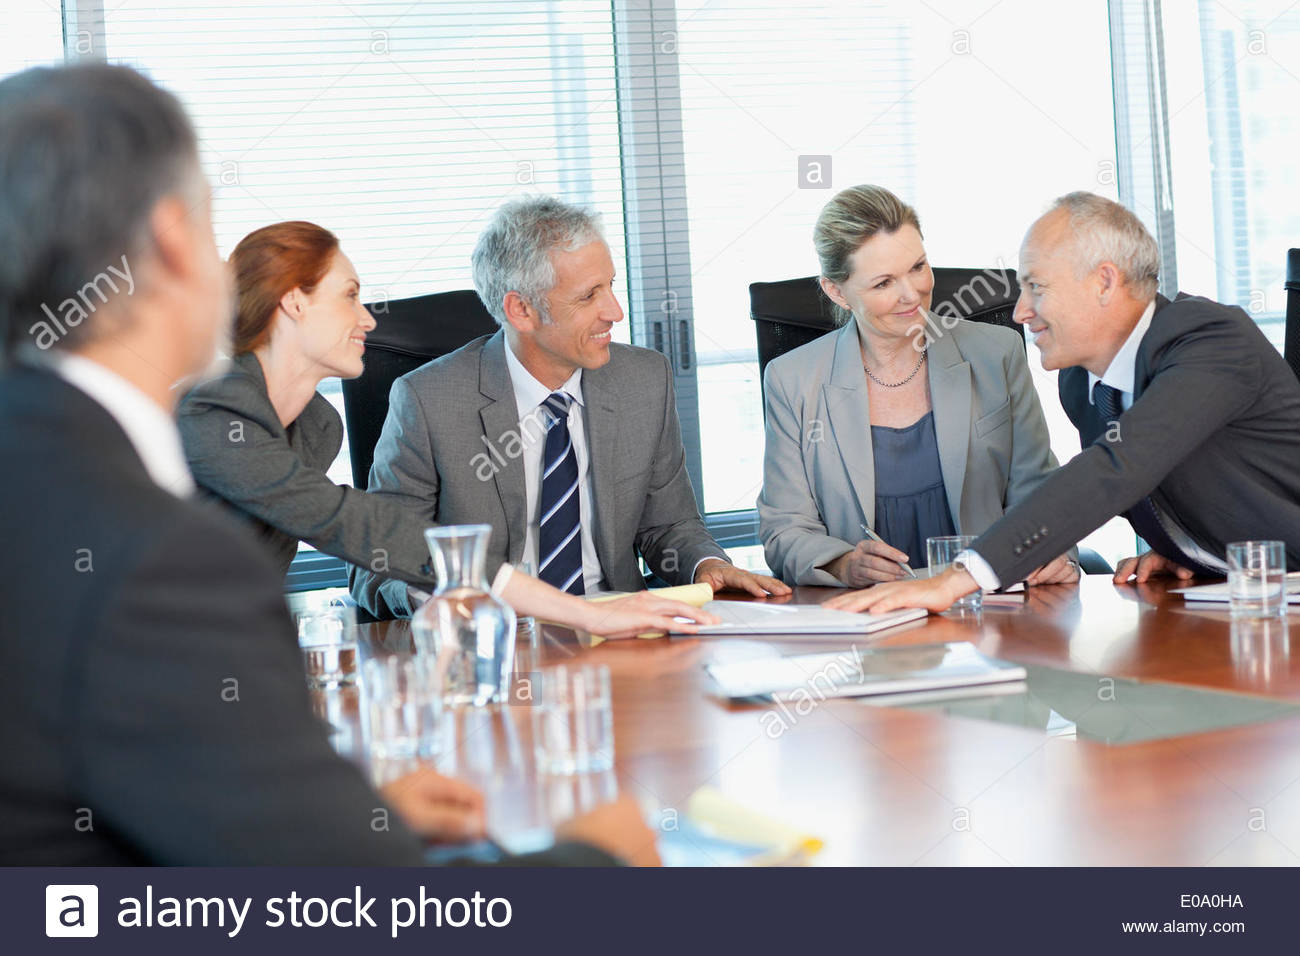 Smiling business people meeting at table in conference room - Stock Image